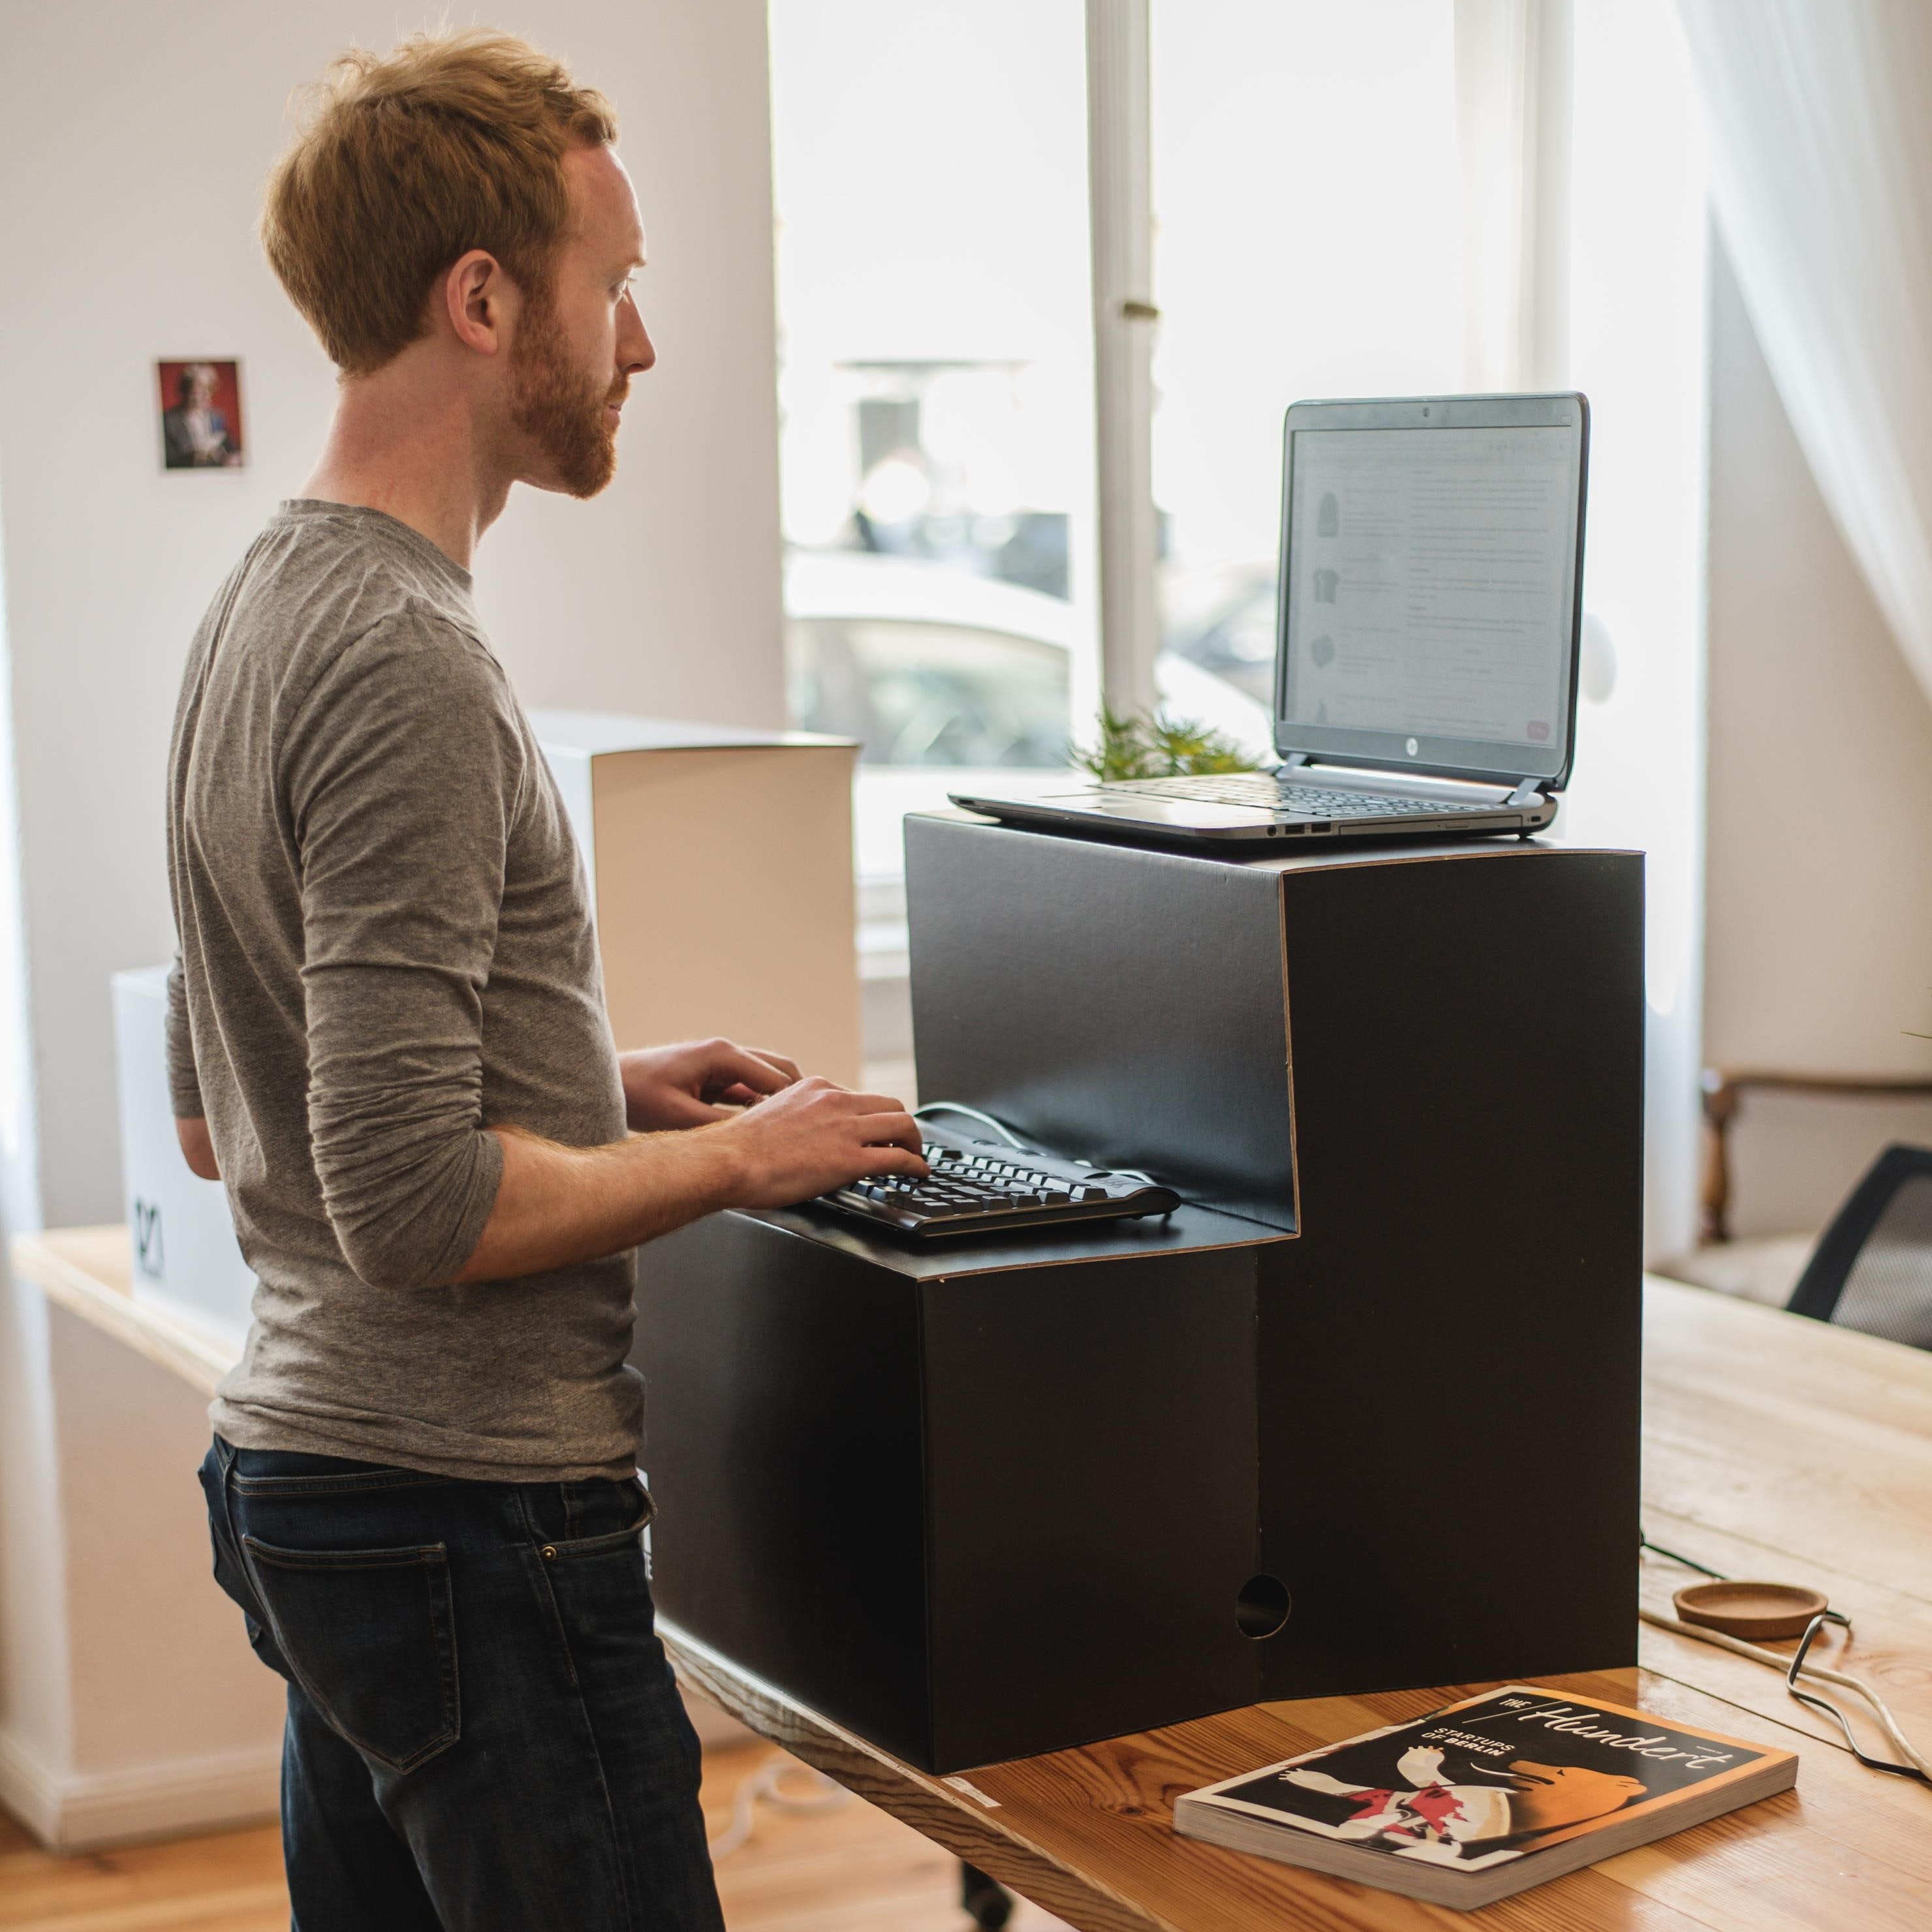 Man working on laptop at standing desk | Global agency, BCD Meetings & Events